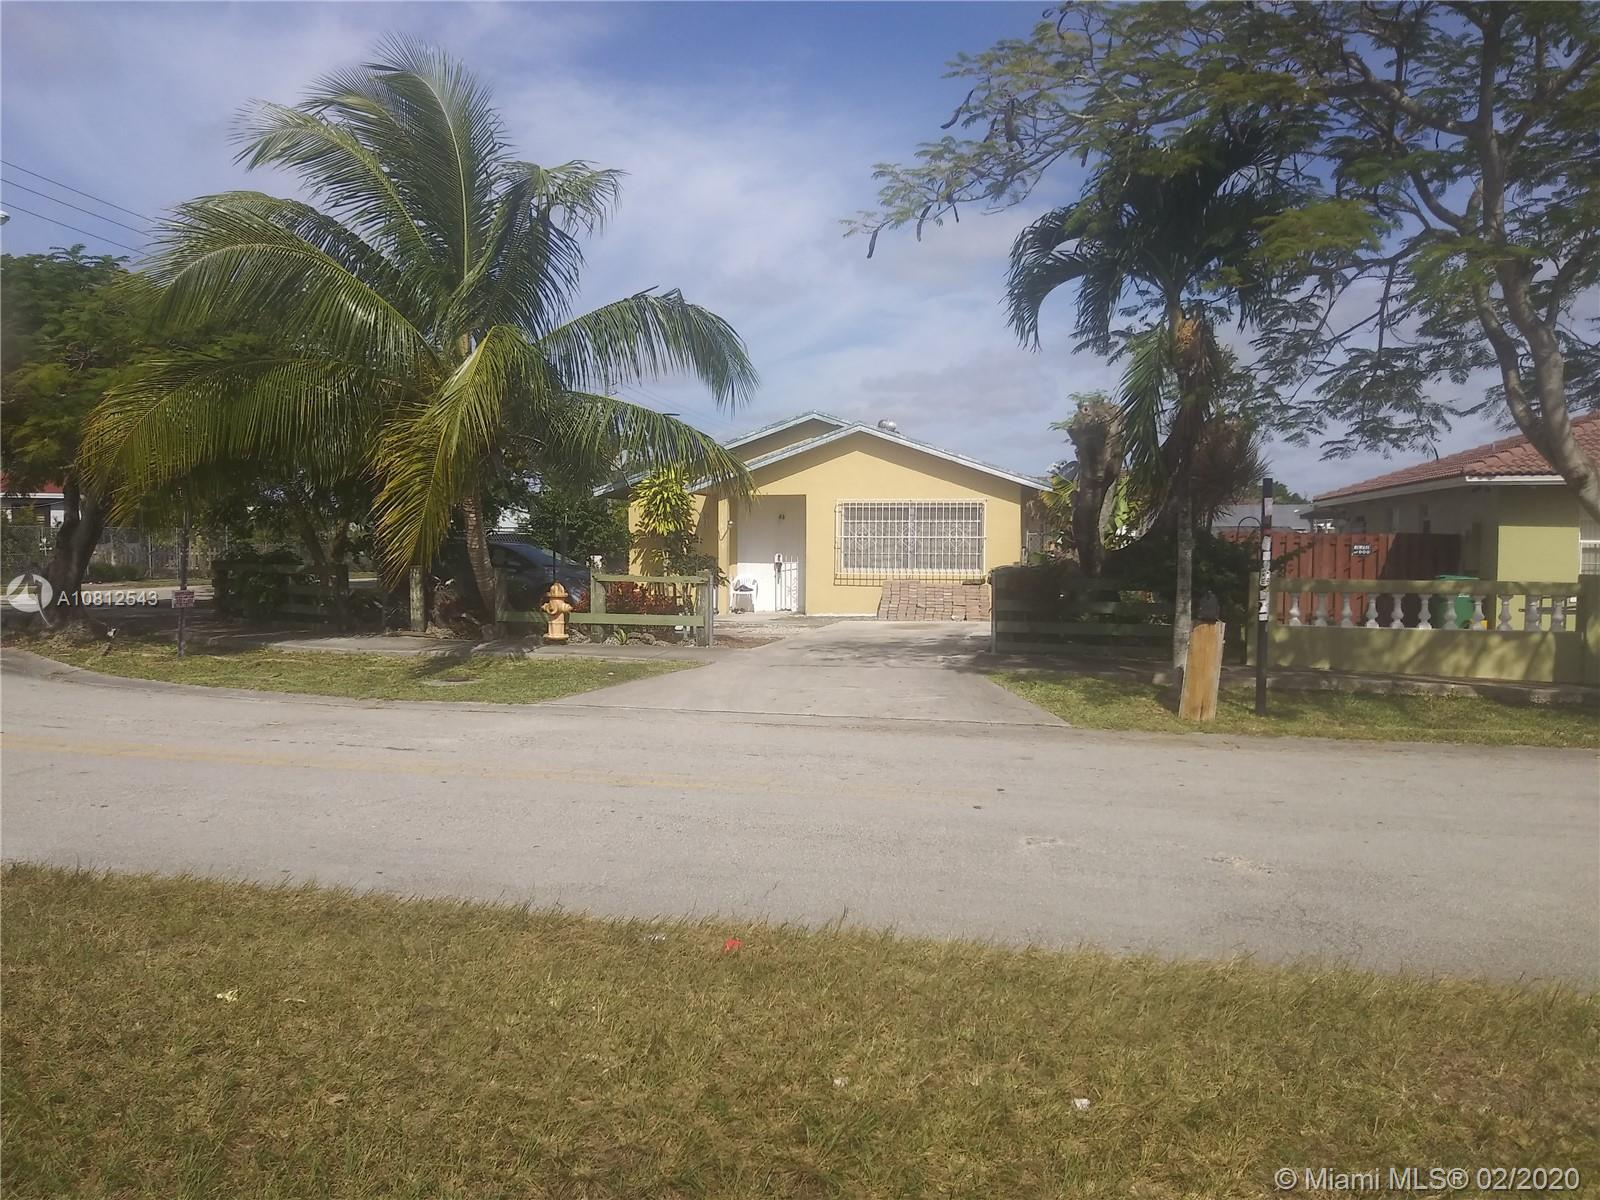 Don't miss this fantastically priced single family home in Homestead*** NO ASSOCIATION***. Corner lot, fully fenced. Perfect interior layout with open kitchen and ample bedrooms. Master suite features large closet.